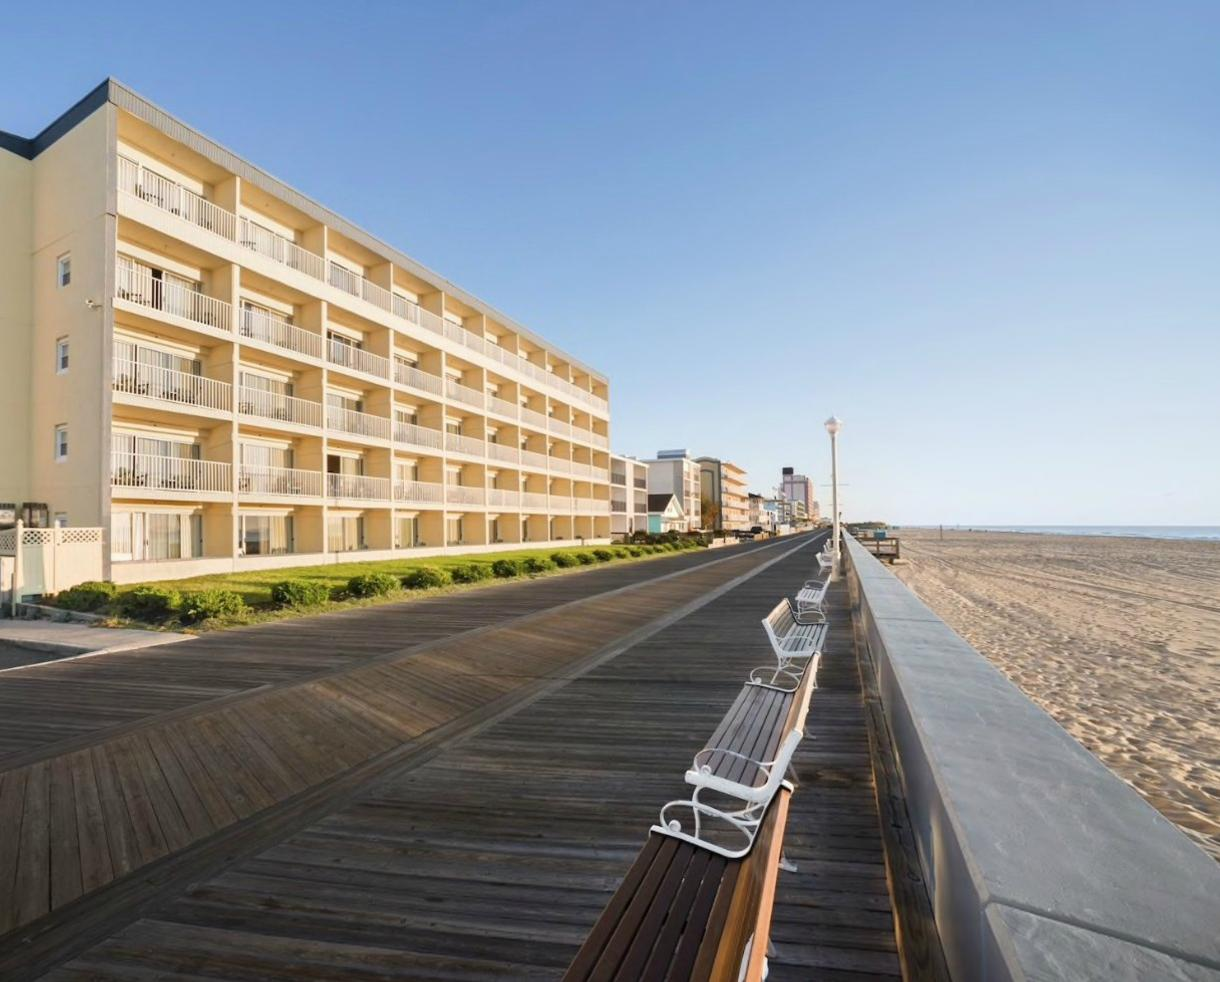 1-Night Weekday Stay at Howard Johnson Oceanfront Inn on the Boardwalk - VALID June 10 - August 23, 2018